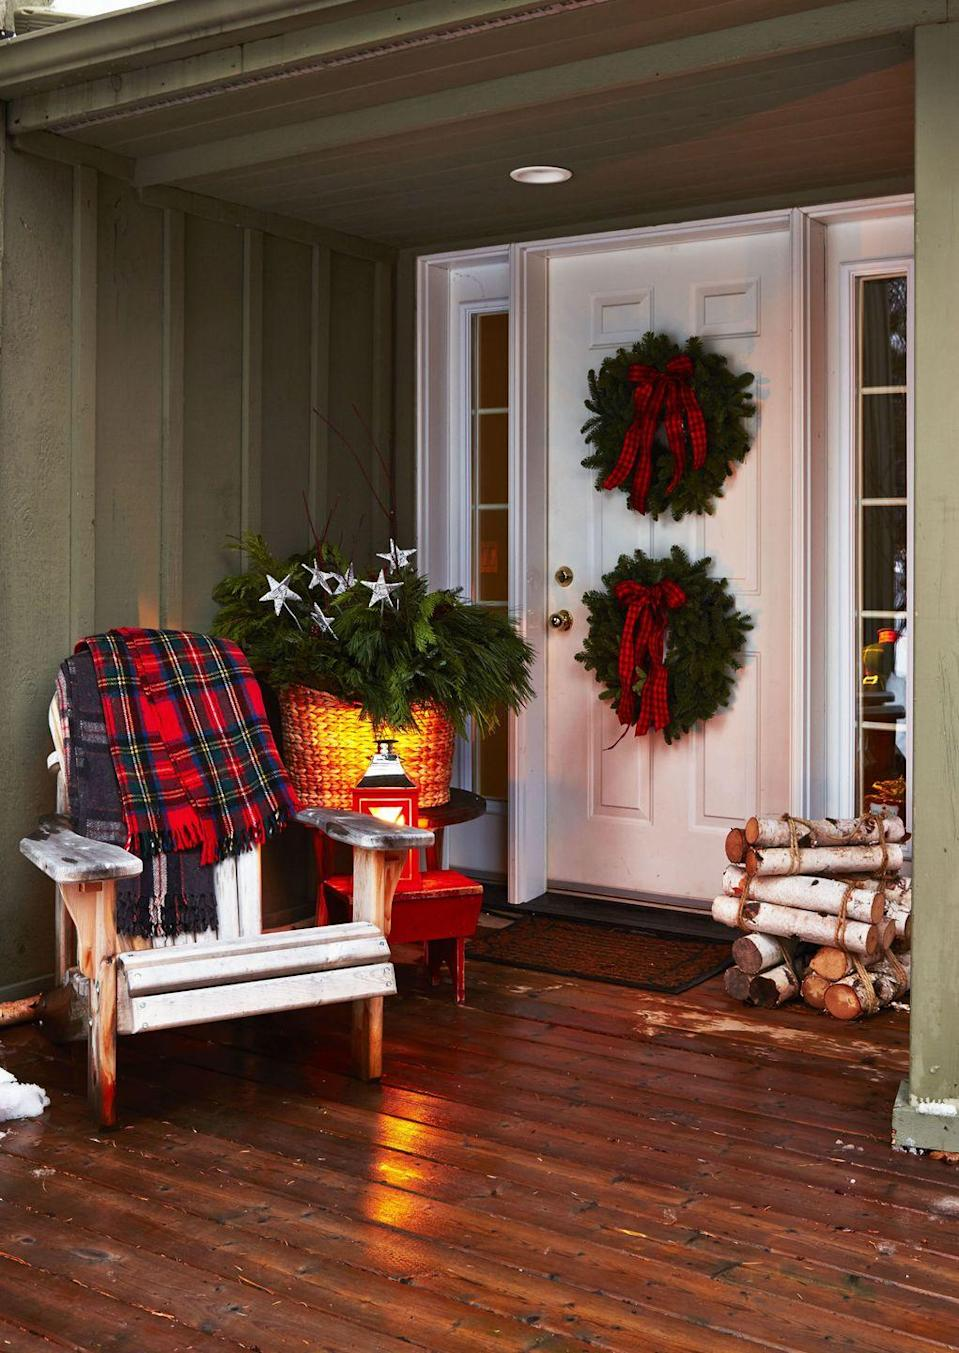 "<p>Two wreaths > one. Stacked on a front door, your entryway will look twice as merry. </p><p>See more at <a href=""http://www.goodhousekeeping.com/holidays/christmas-ideas/how-to/g2203/christmas-decoration-ideas/"" rel=""nofollow noopener"" target=""_blank"" data-ylk=""slk:Good Housekeeping"" class=""link rapid-noclick-resp"">Good Housekeeping</a>. </p>"